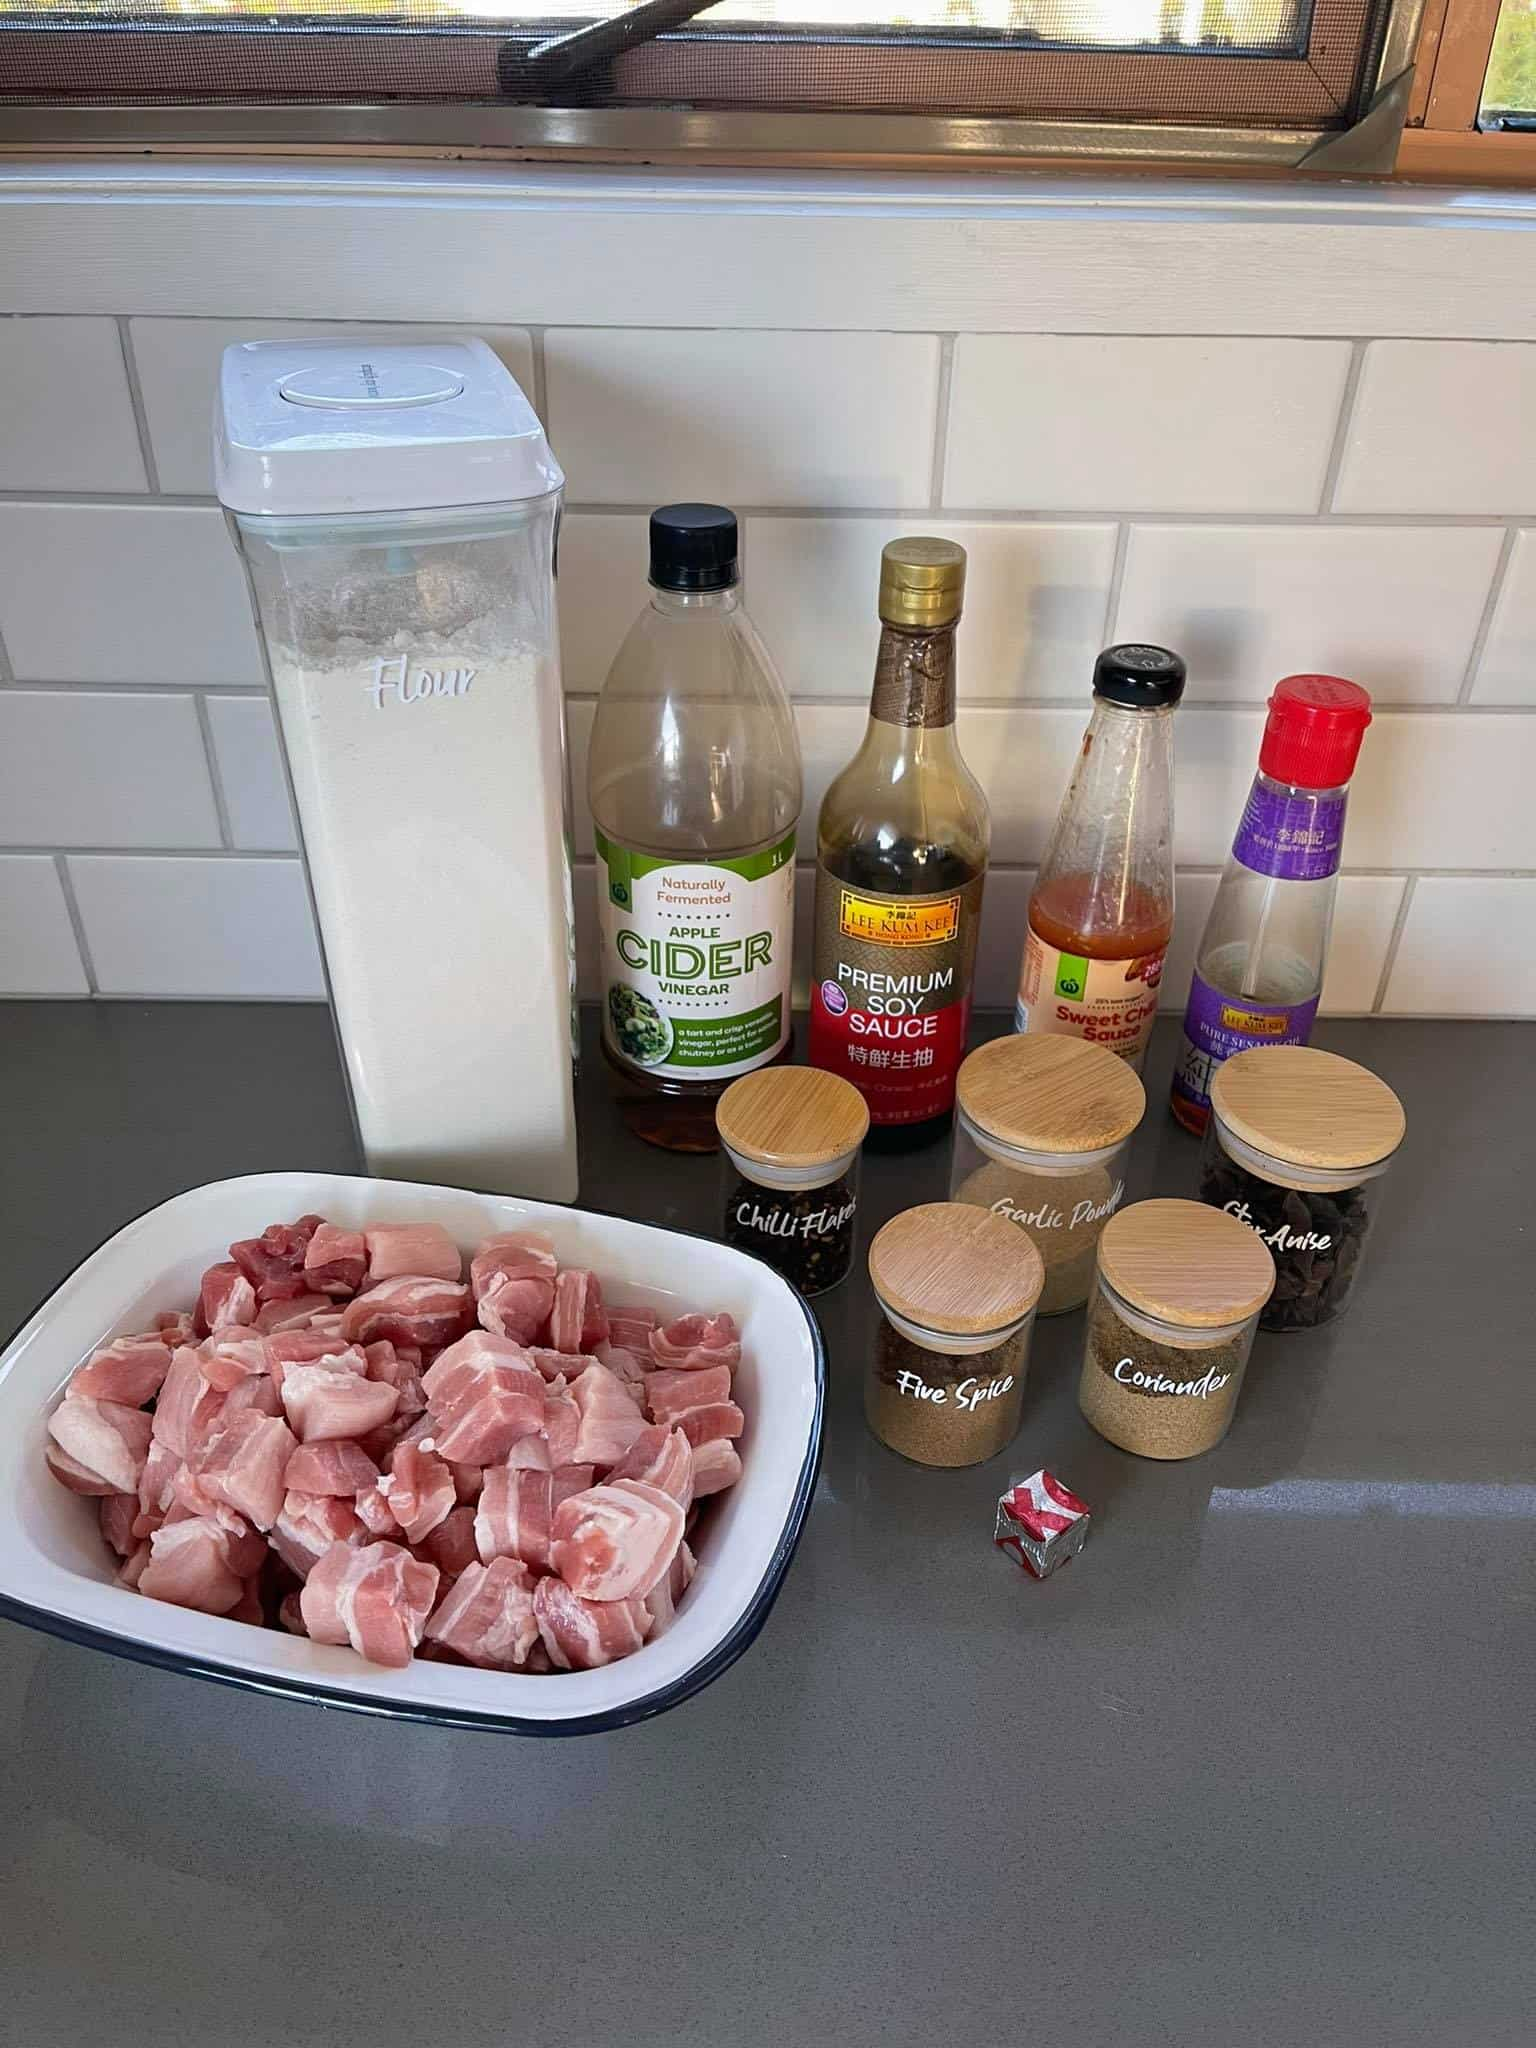 Diced pork in a white dish, a container of flour, sauce bottles and spice jars sitting on a grey bench.